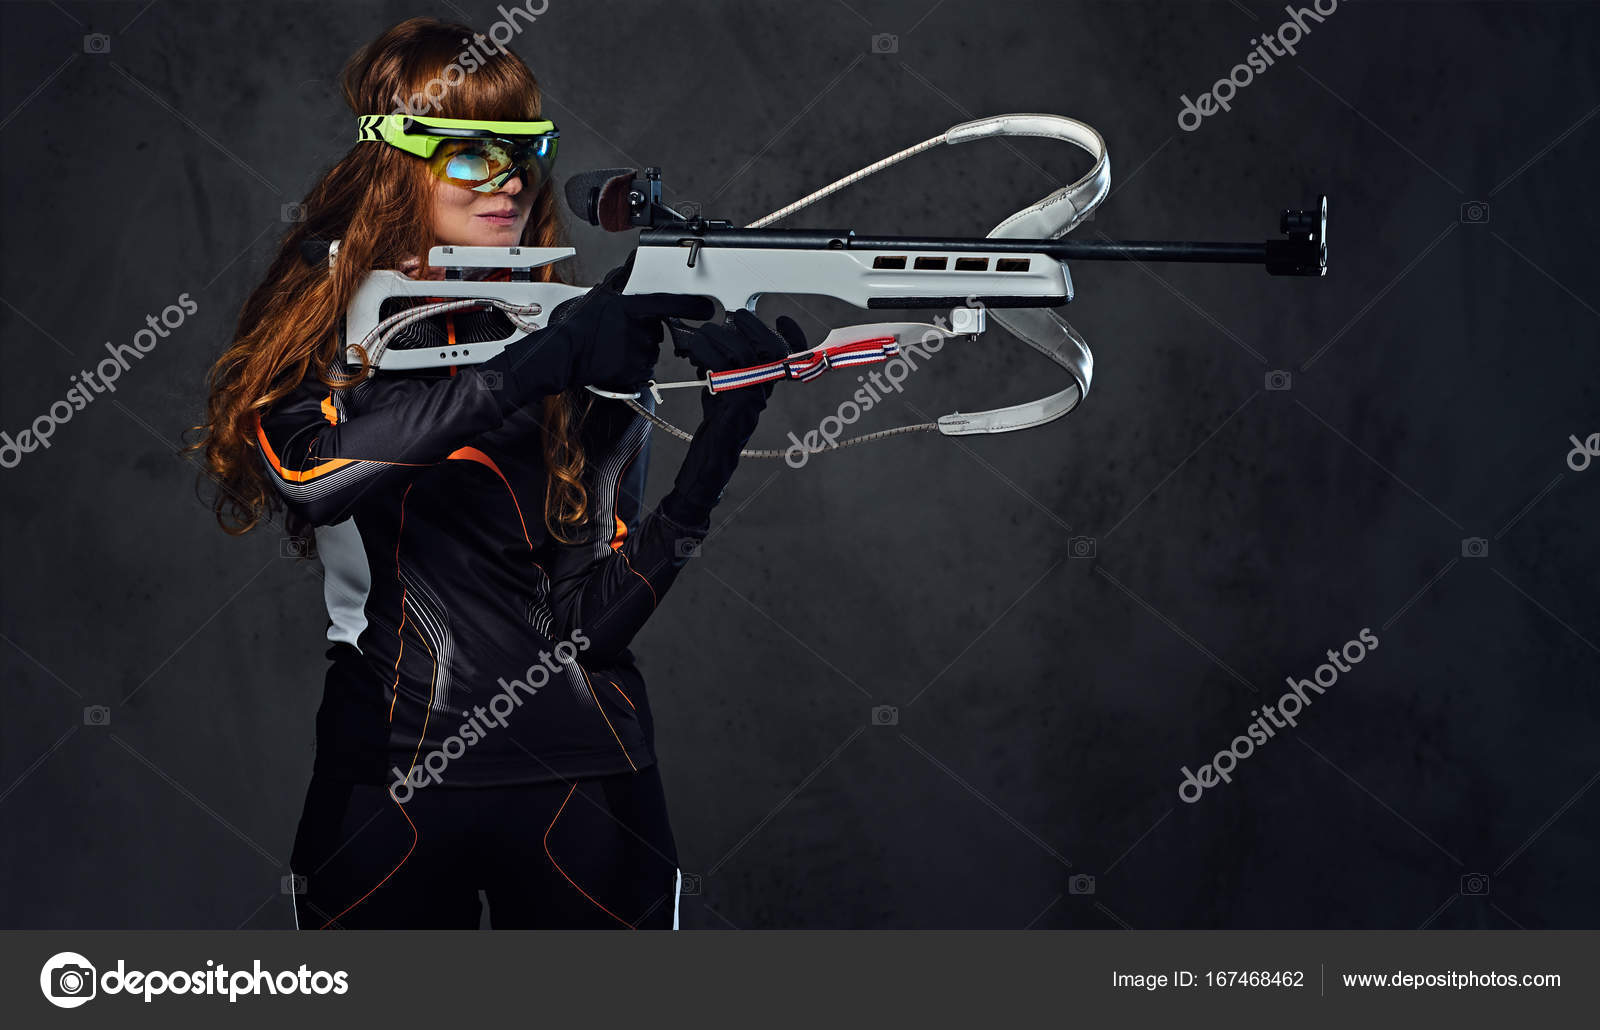 Biathlon champion aiming with a competitive gun — Stock